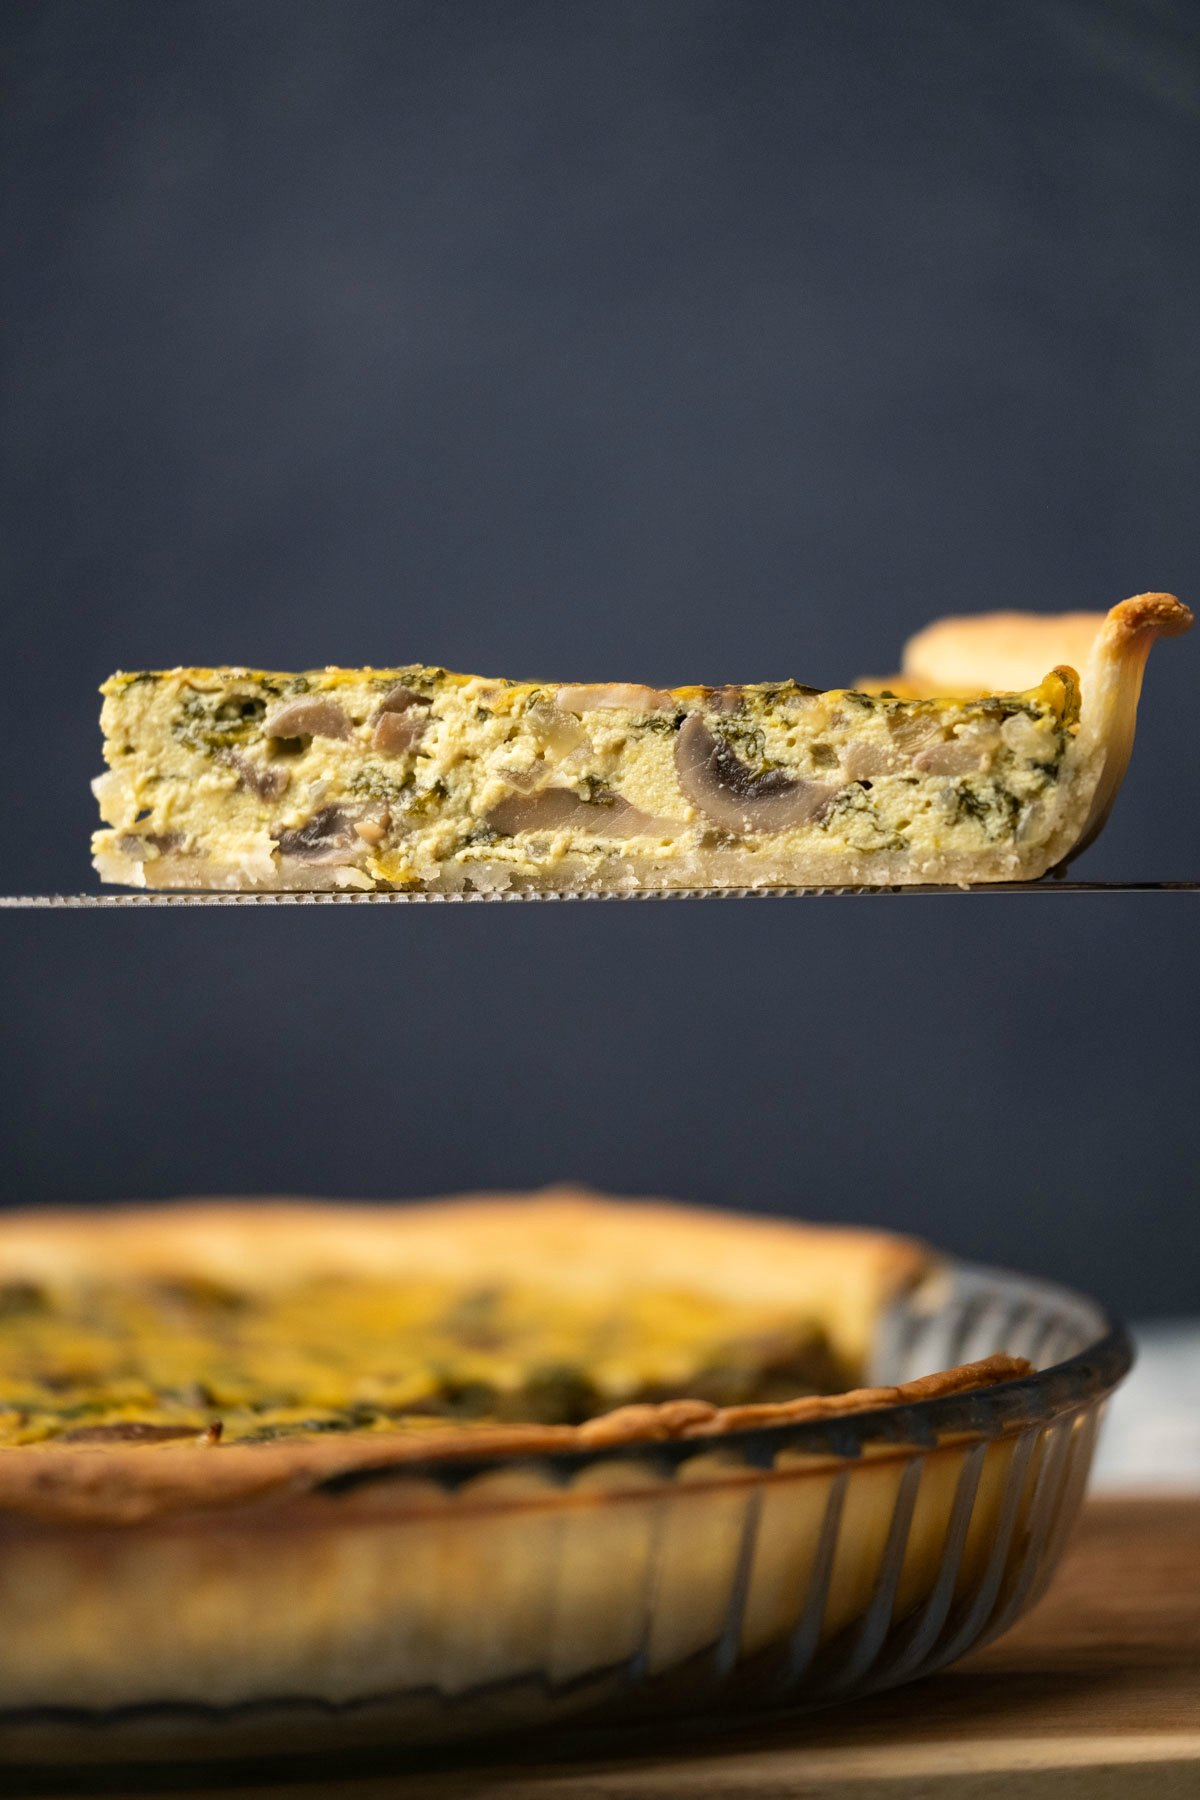 Slice of vegan quiche on a cake lifter.